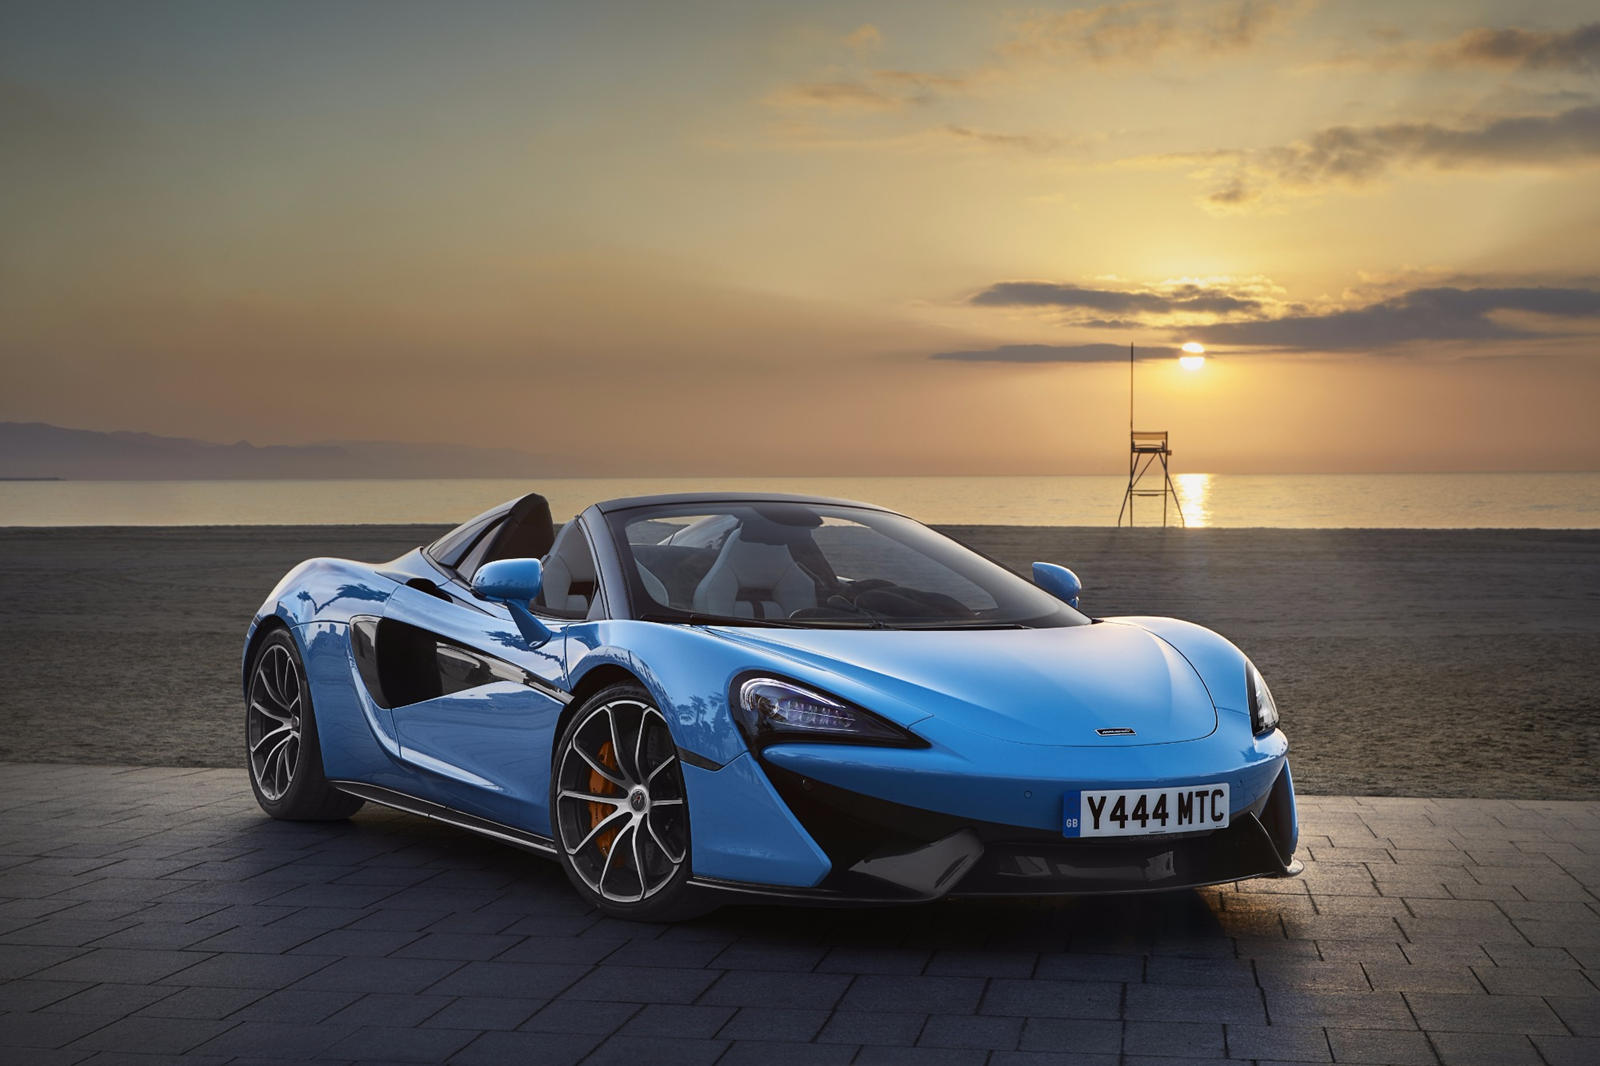 2018 McLaren 570S Spider Review, Trims, Specs and Price ...